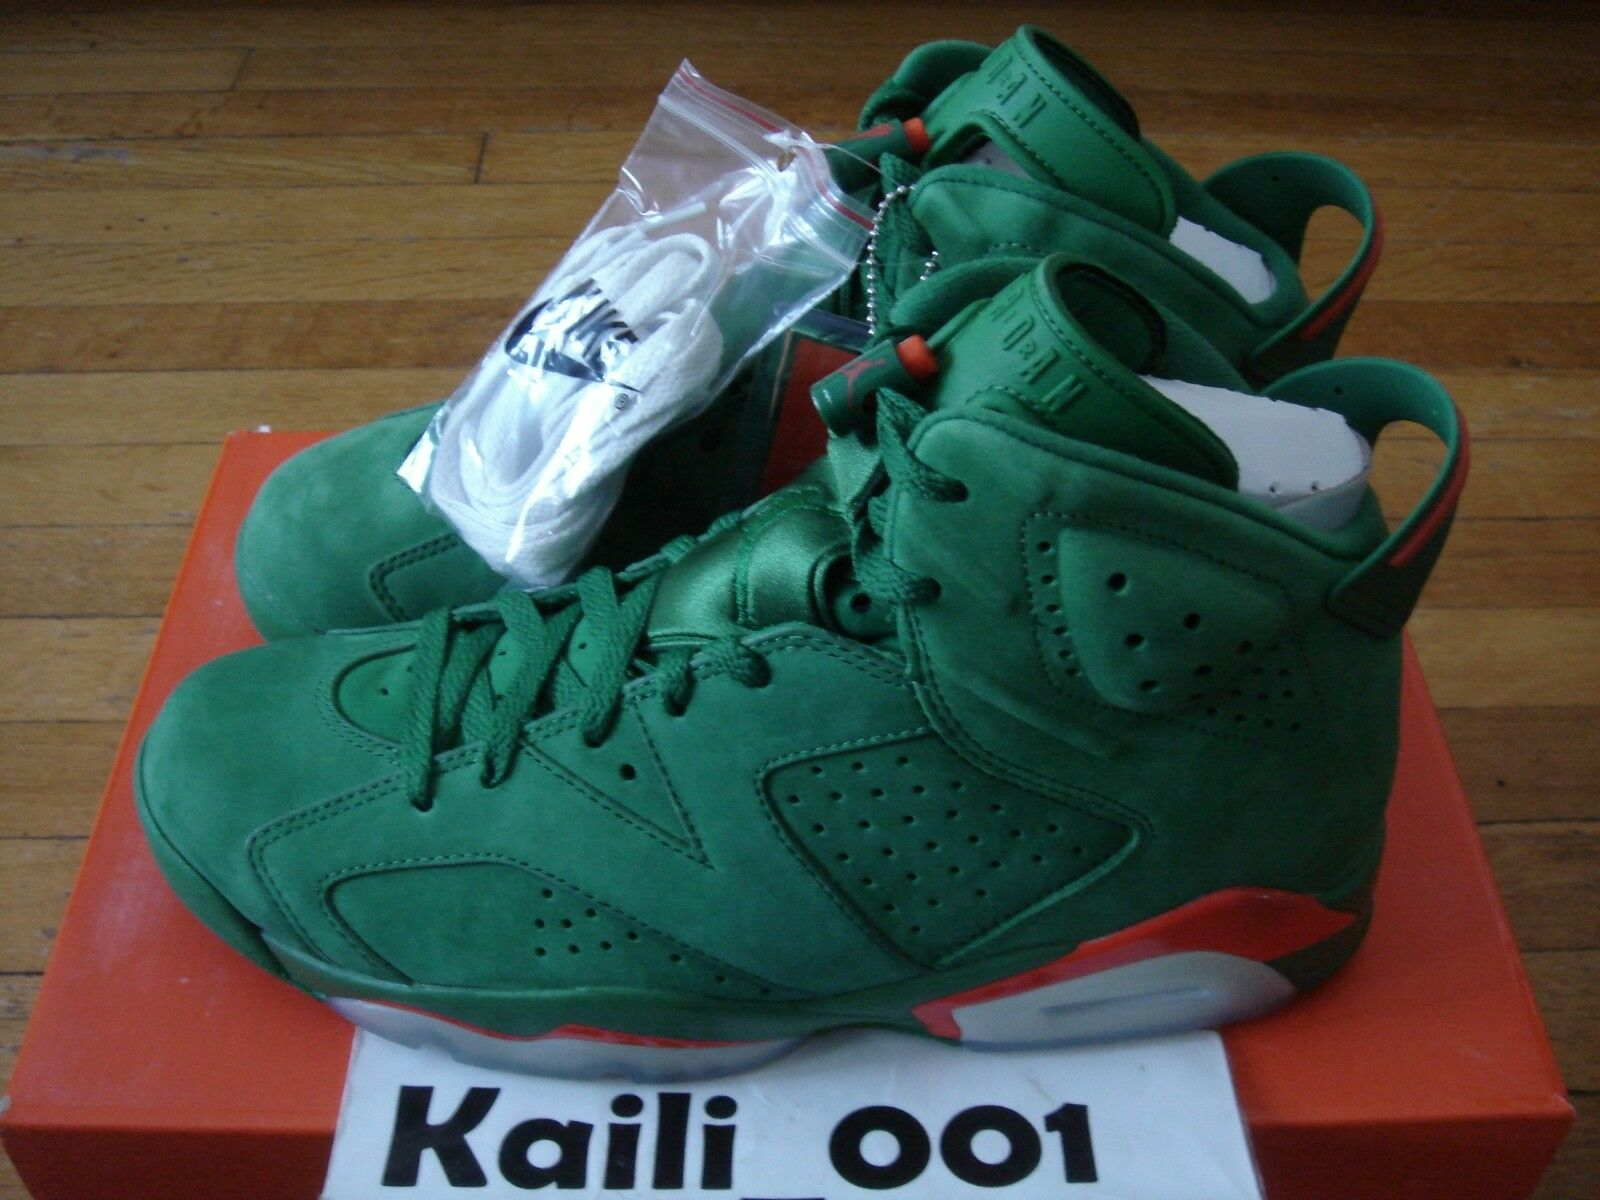 18e36281535 Air Jordan 6 Retro NRG G8RD Gatorade AJ5986-335 PINE GREEN 2017 A Nike  nobpaw1650-Athletic Shoes